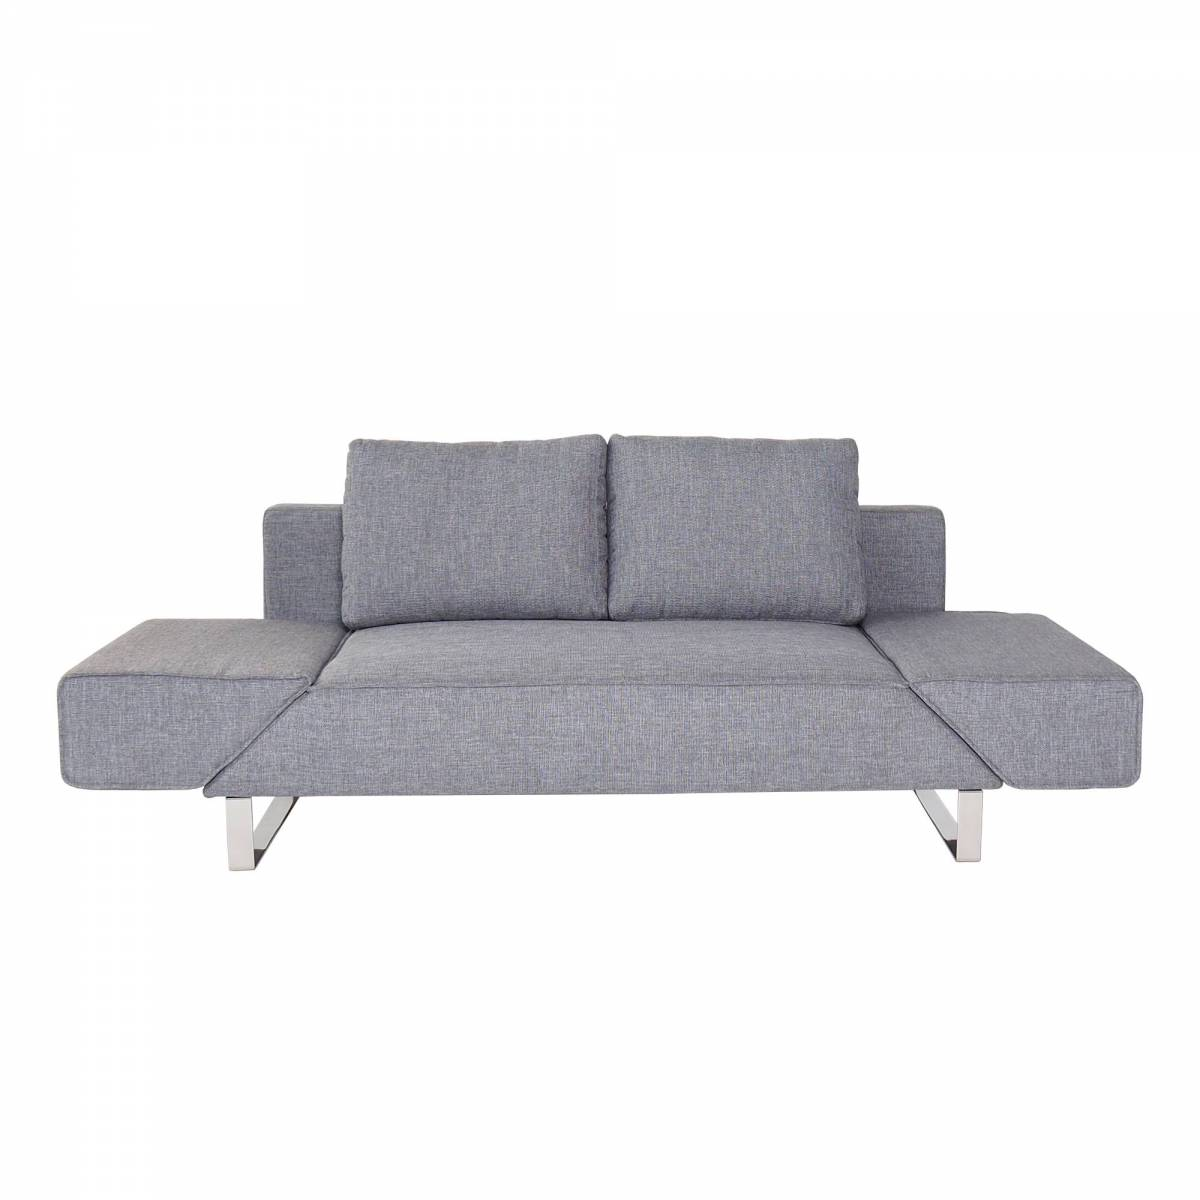 sleeper top best beds couch cheap for watch to sale reviews sofa bed